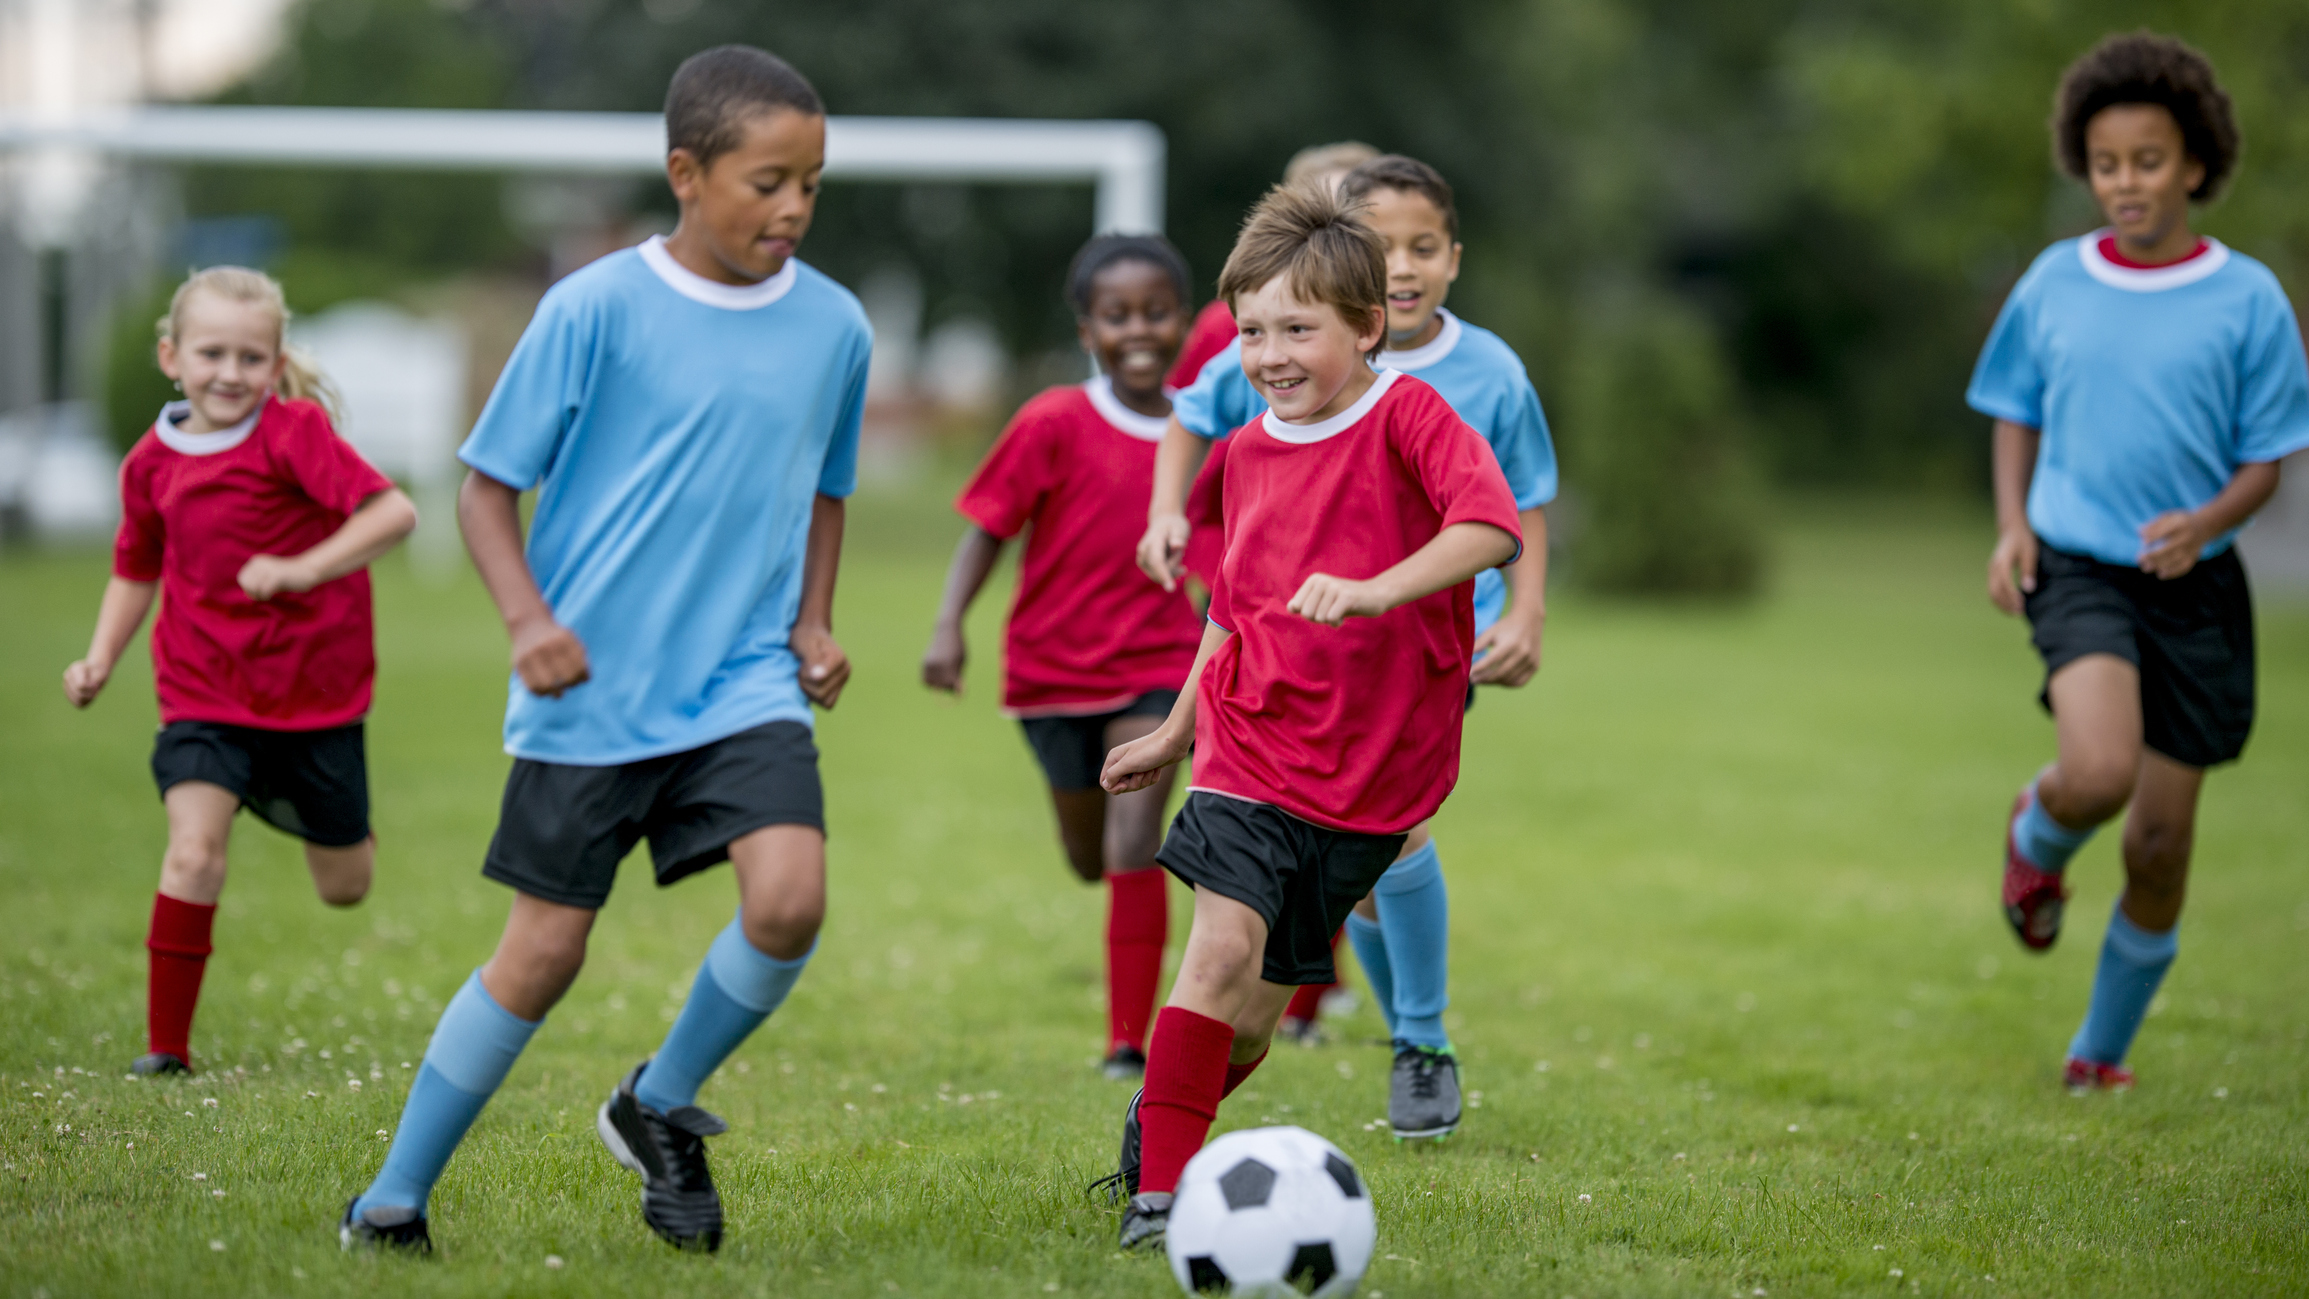 A multi-ethnic group of children are playing football, while running down a grass field, kicking and chasing the ball